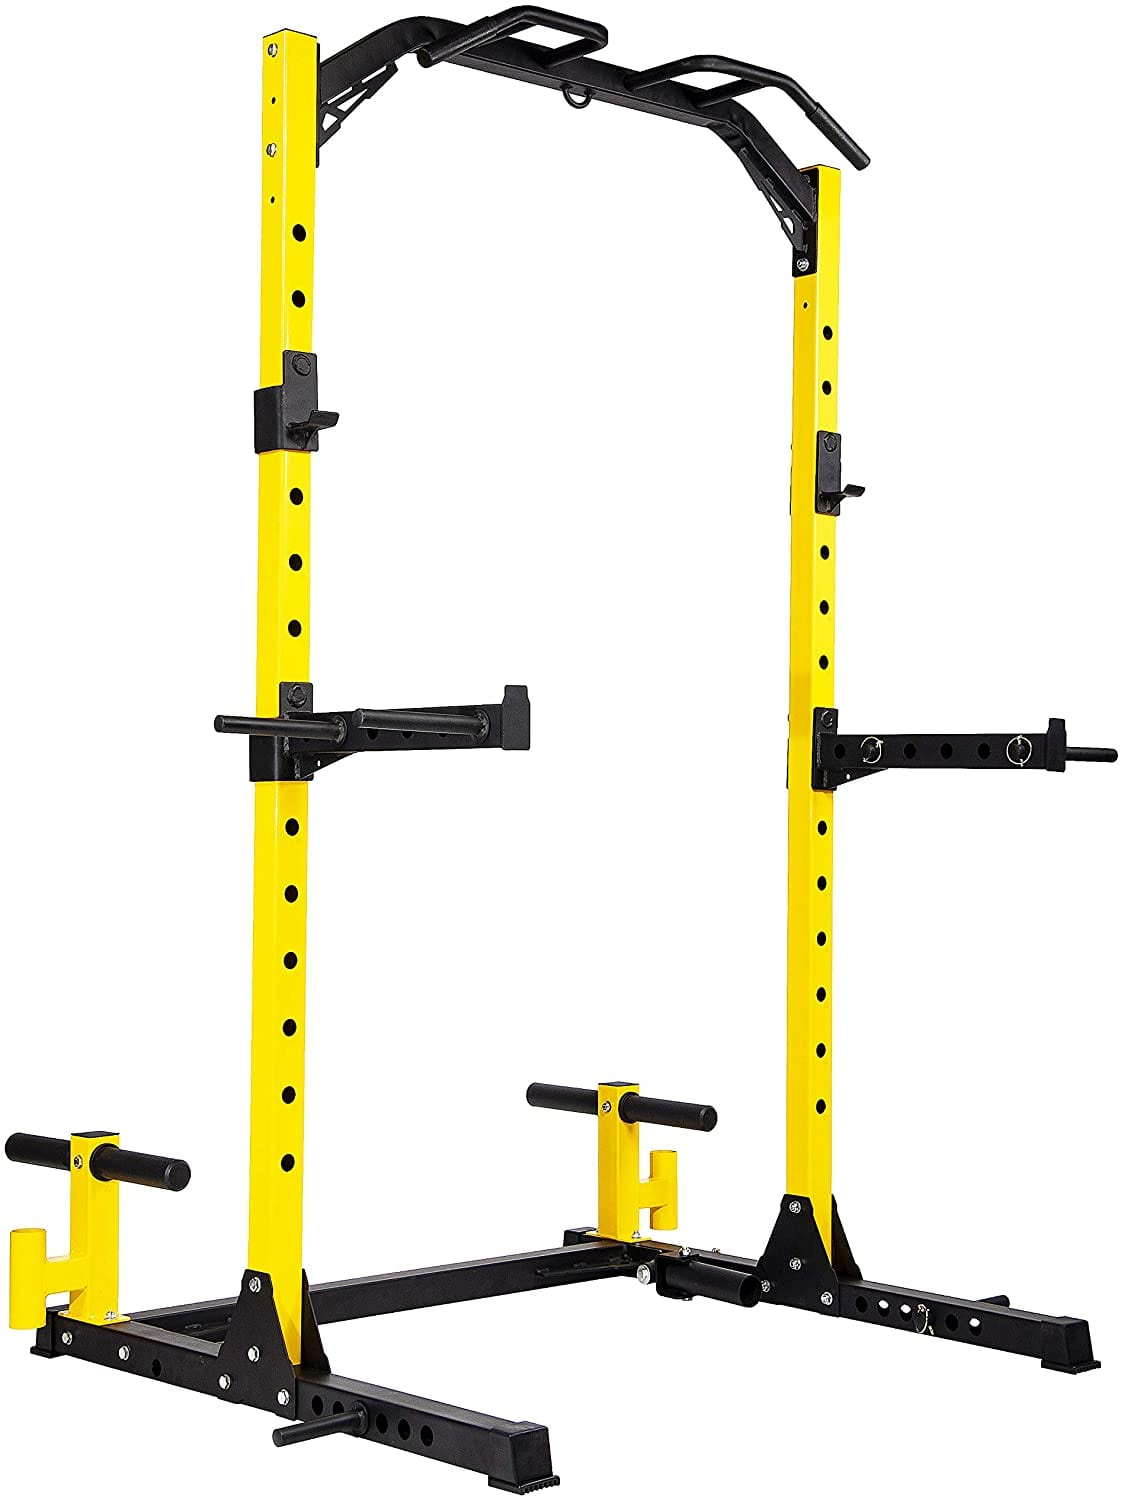 5 Best Half Racks for Your Home Gym 3